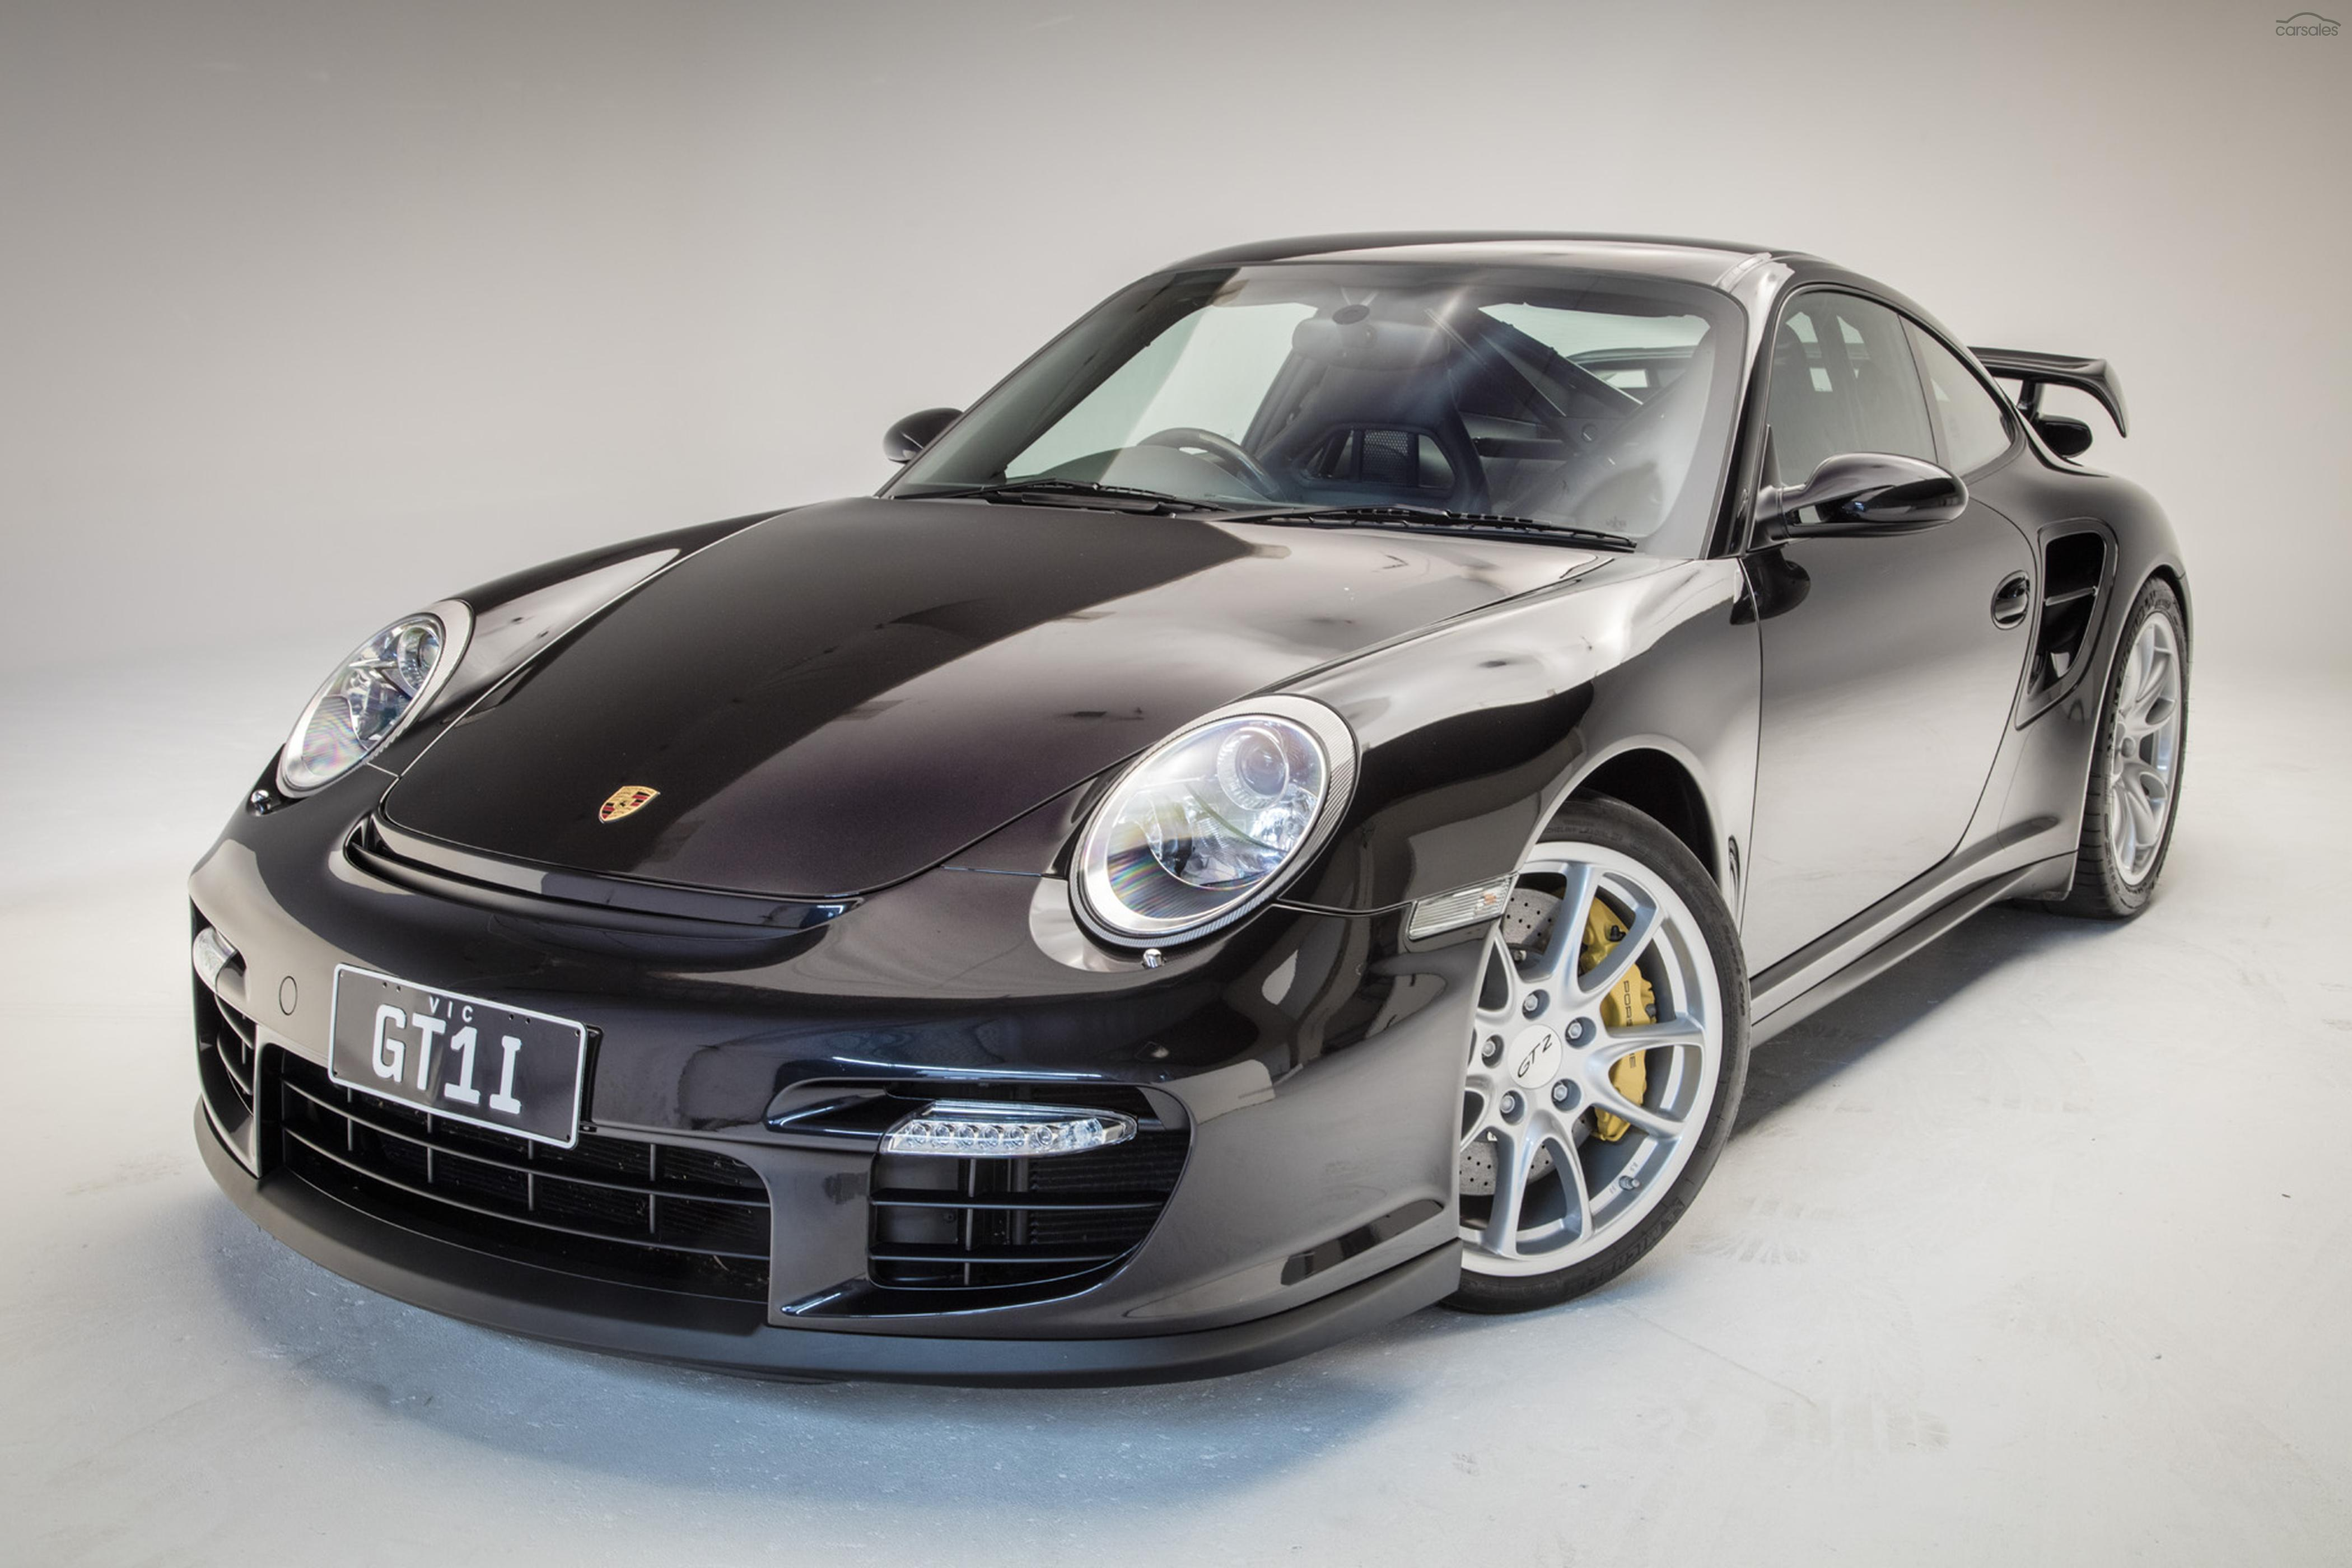 997 gt2 rs up for sale porsche page 5 owners forum australia. Black Bedroom Furniture Sets. Home Design Ideas